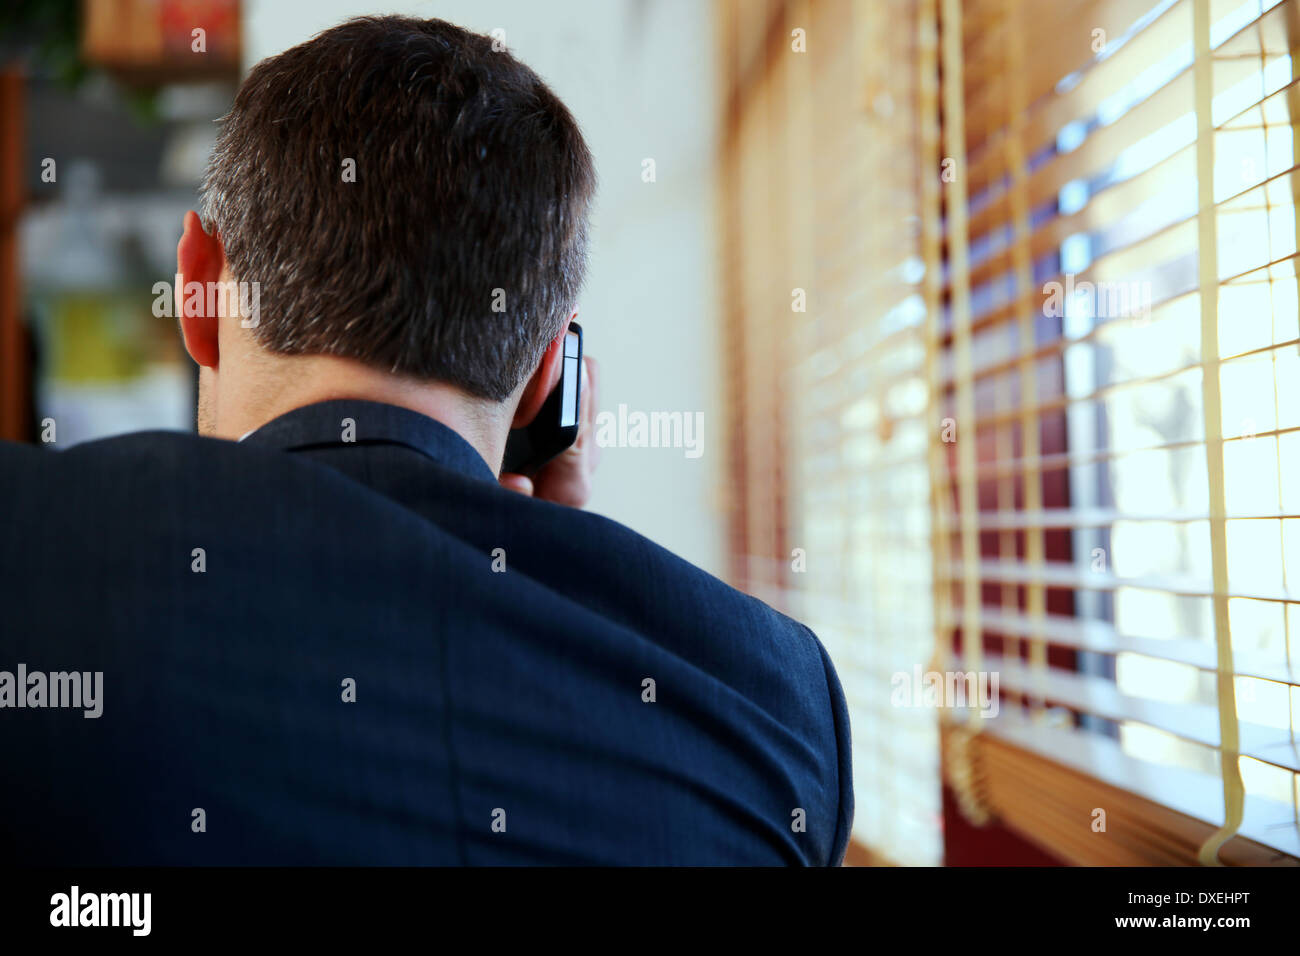 Back view portrait of a businessman talking on the phone at office - Stock Image